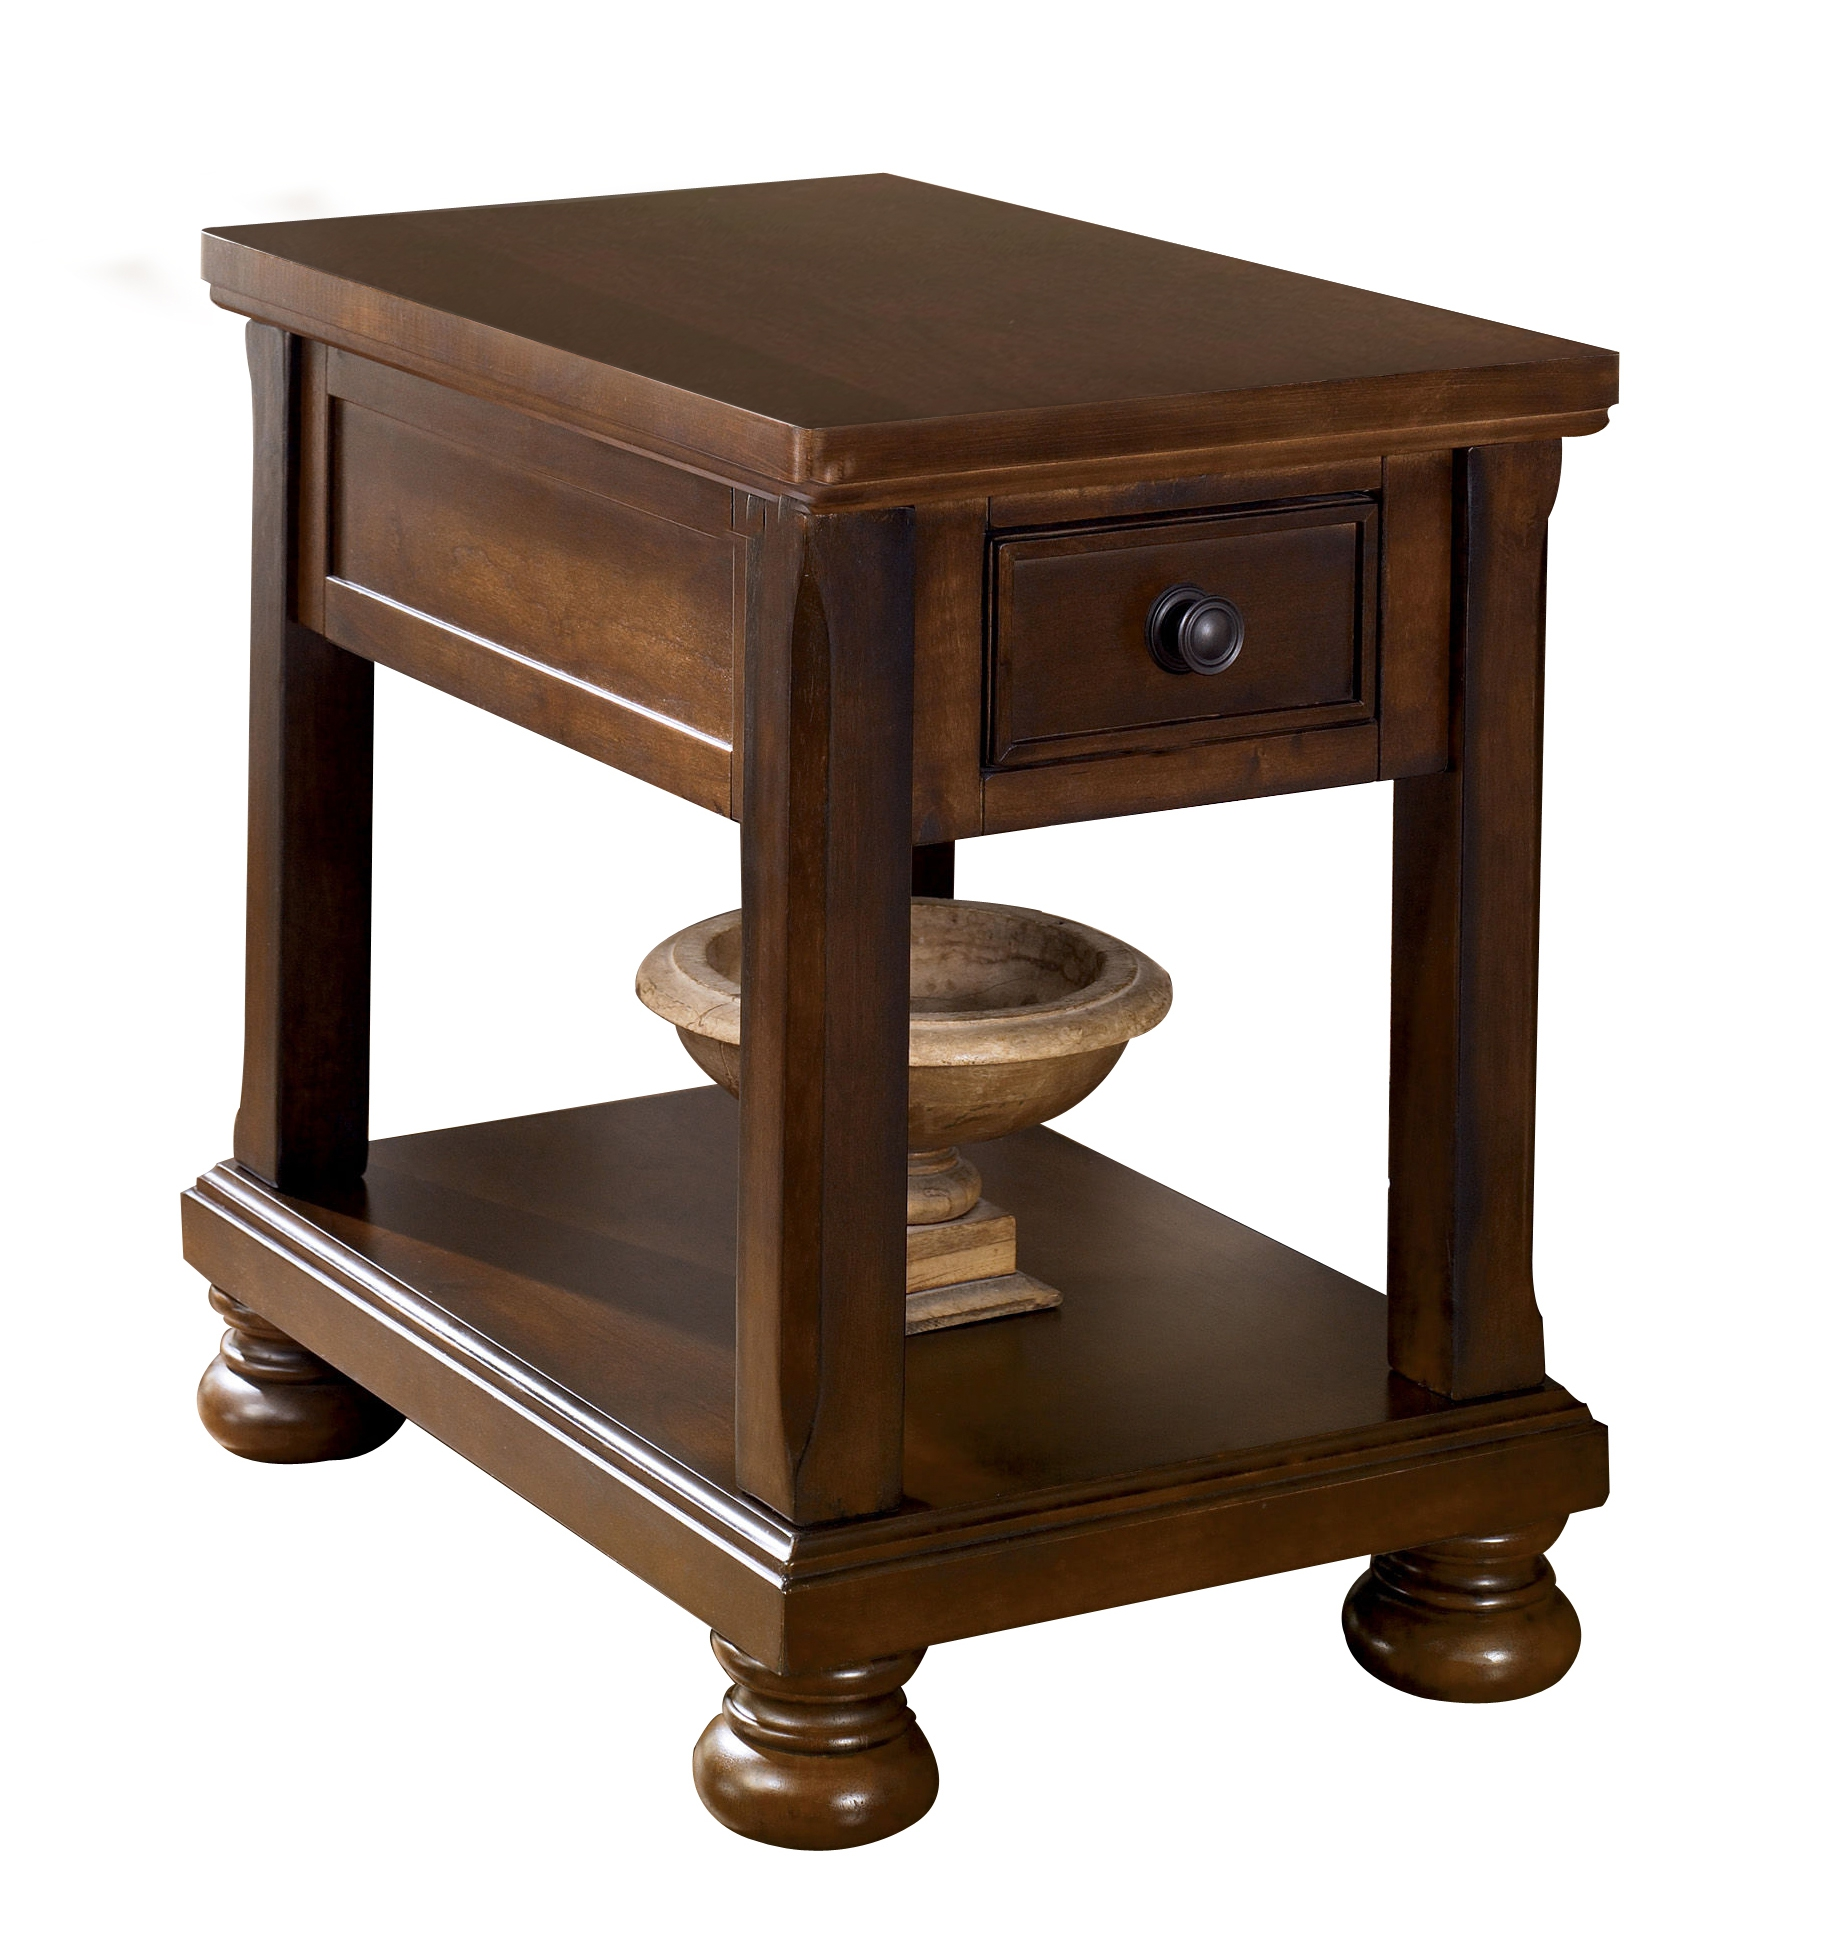 ashley furniture porter brown chair side table the classy home wbg accent tables click enlarge dining design long trestle counter height set oriental lamp shade mirrored